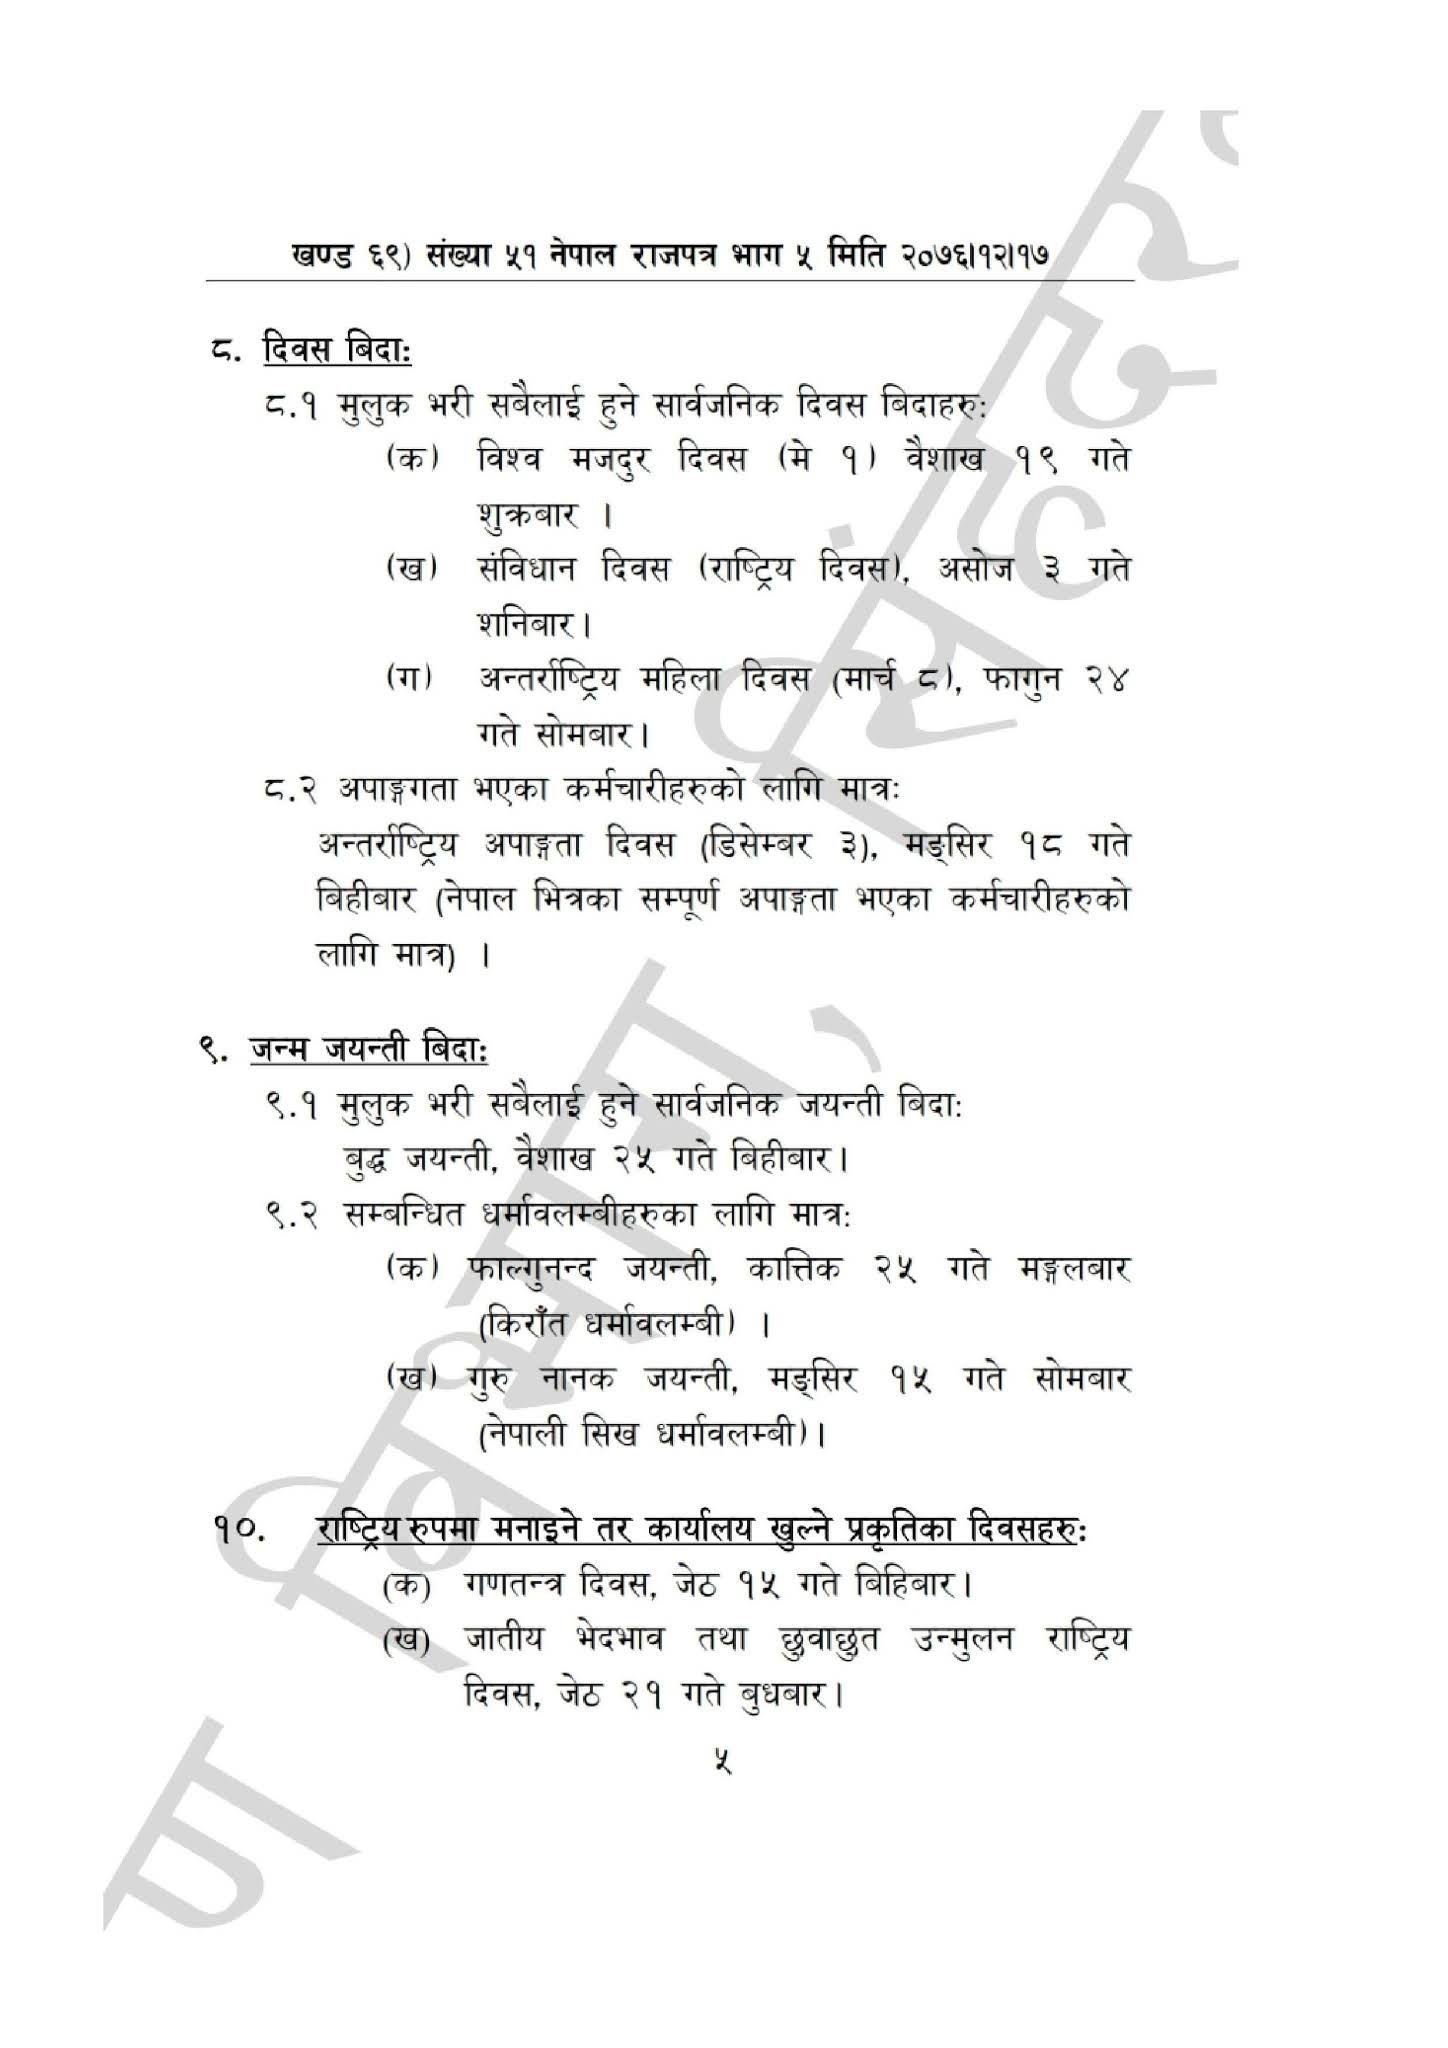 Public Holidays in Nepal for 2077 BS